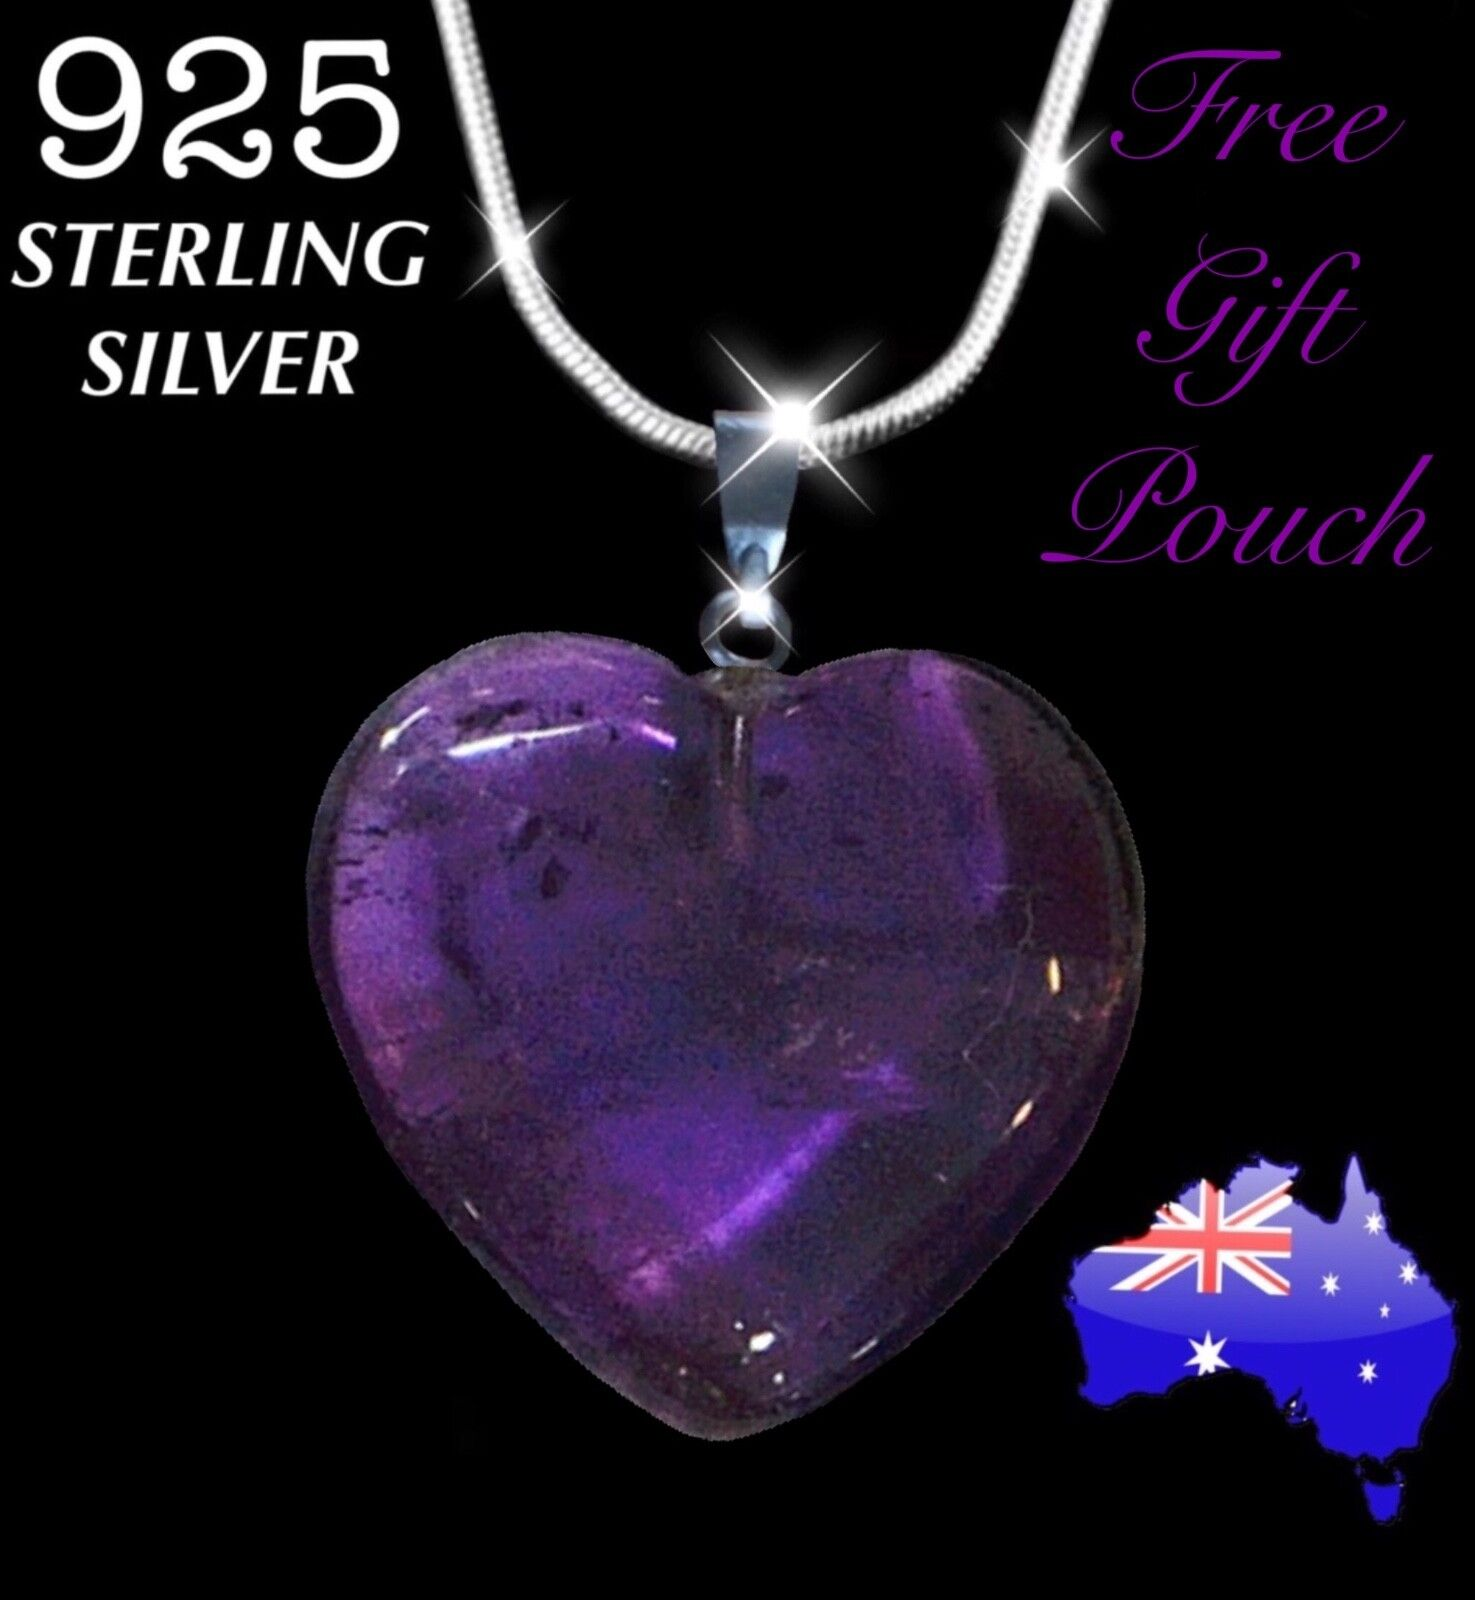 Jewellery - Amethyst Quartz Natural Crystal Heart Pendant 925 Sterling Silver Necklace Gift